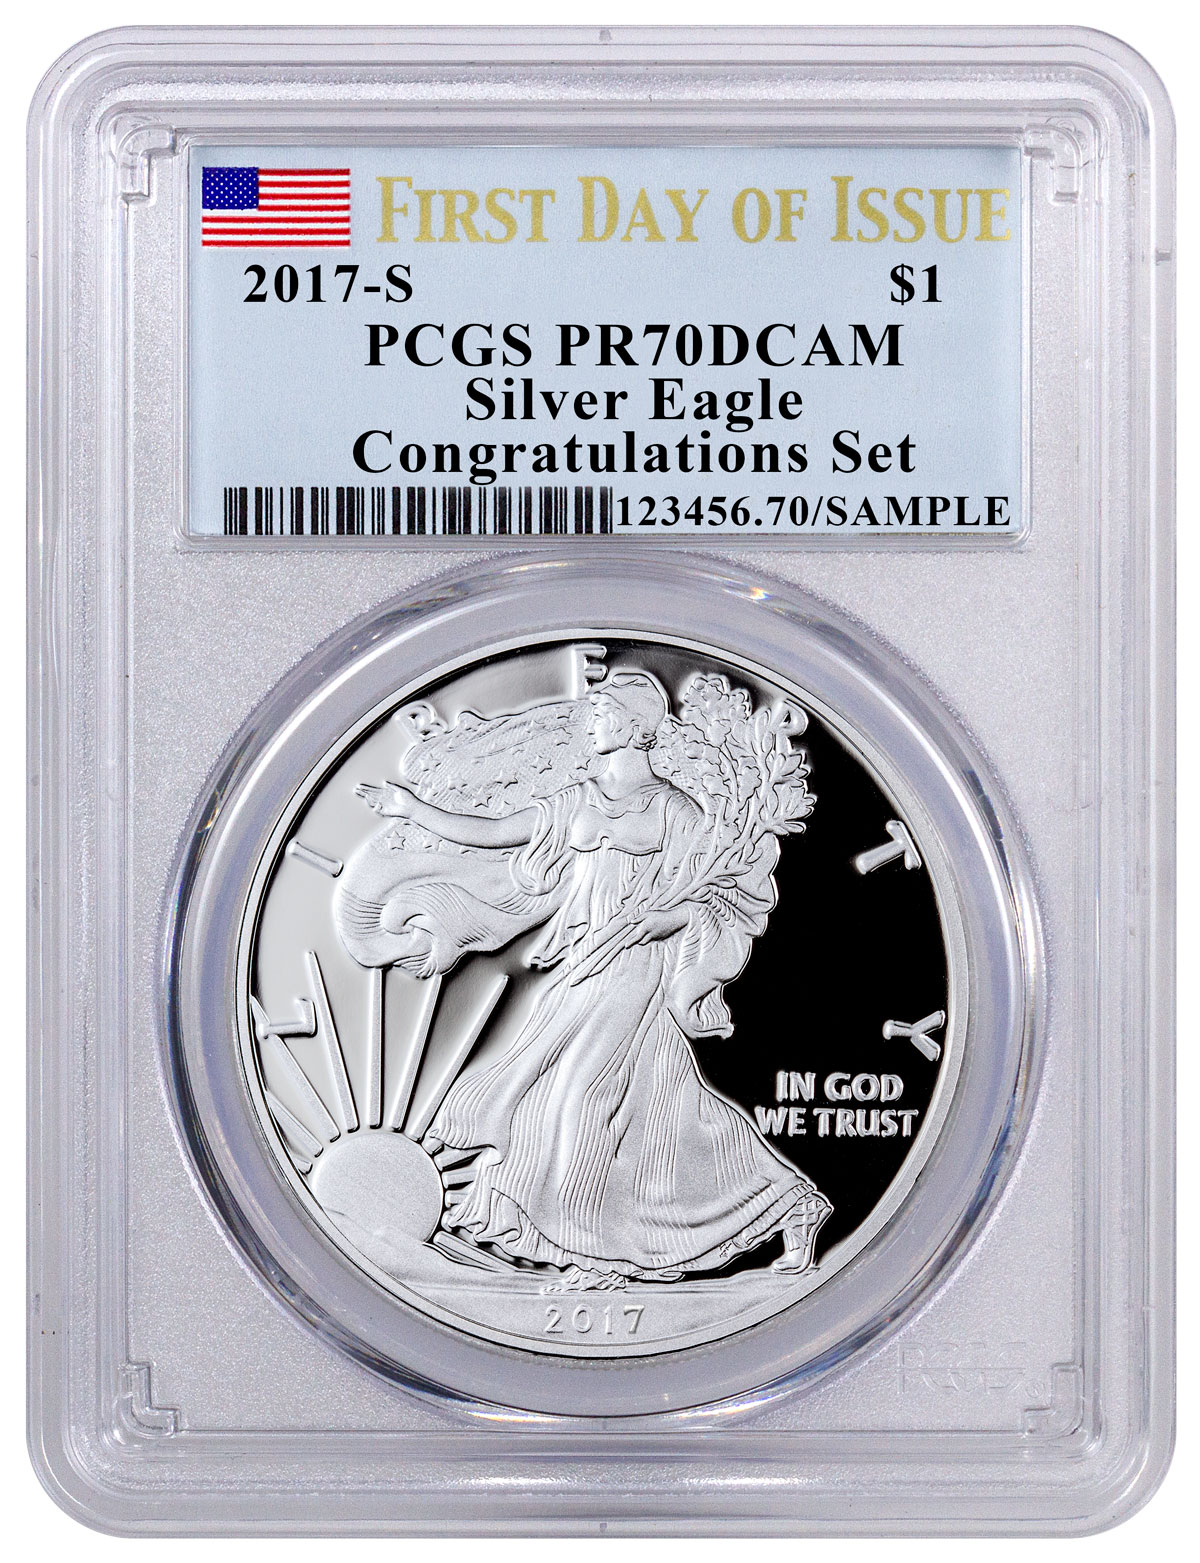 2017 S Proof Silver Eagle Congratulations Set Pcgs Pr70